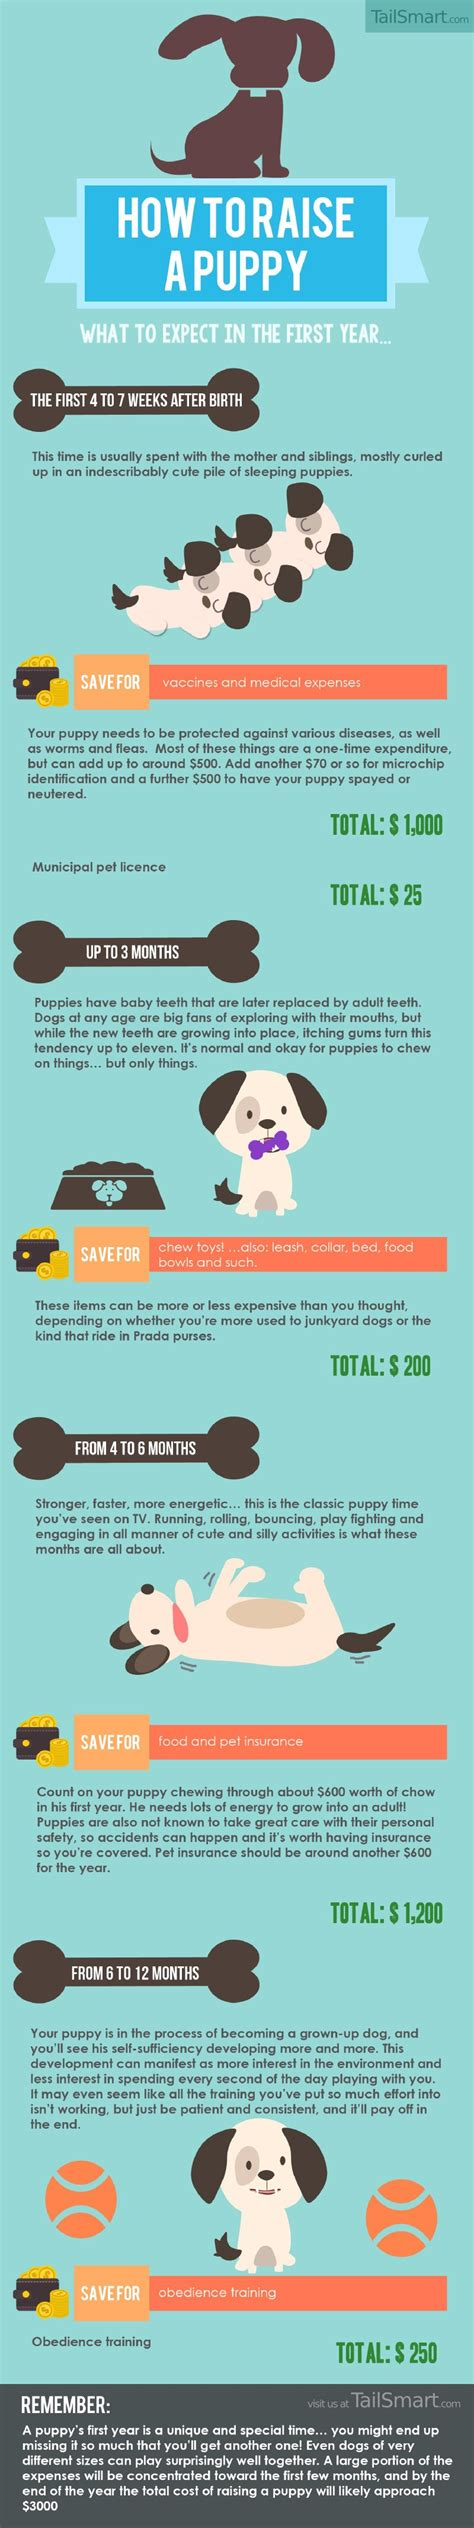 puppy bathroom schedule how to raise a puppy what to expect in the first year